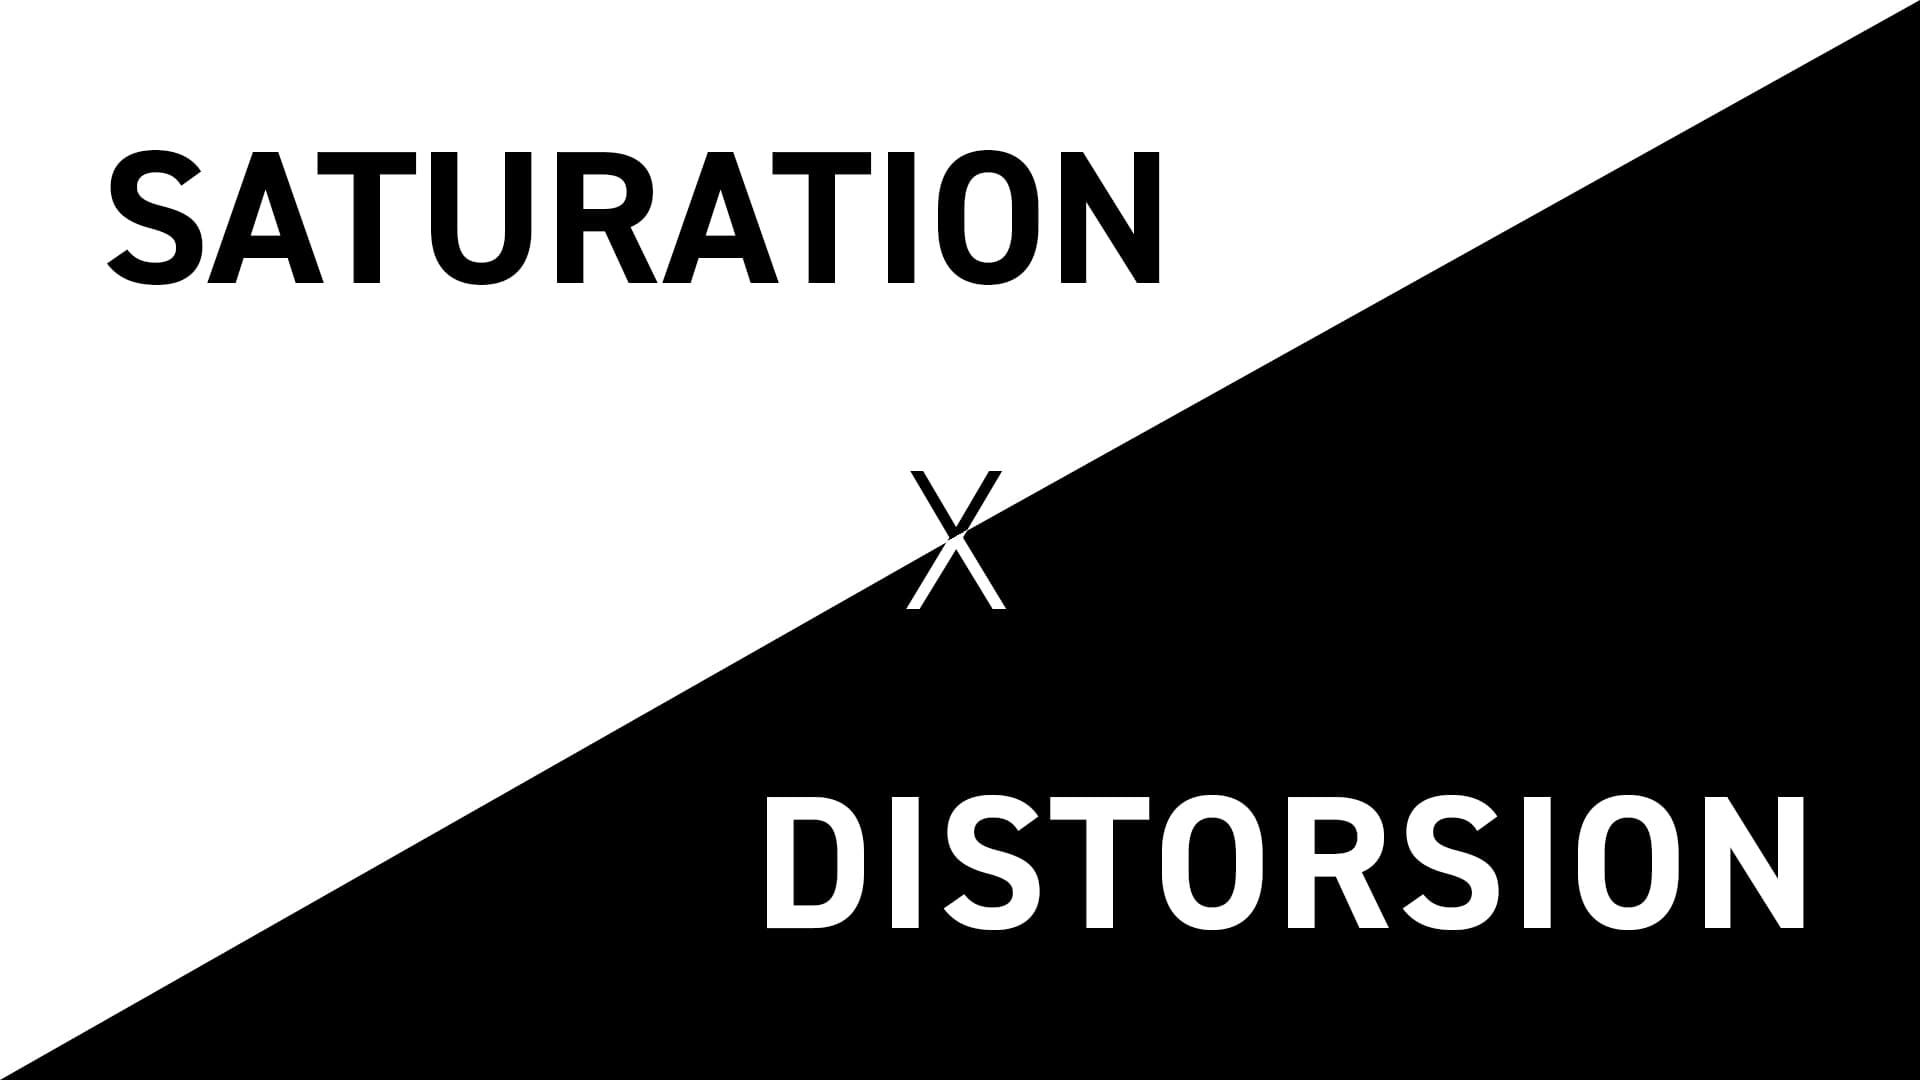 Saturation vs. Distortion